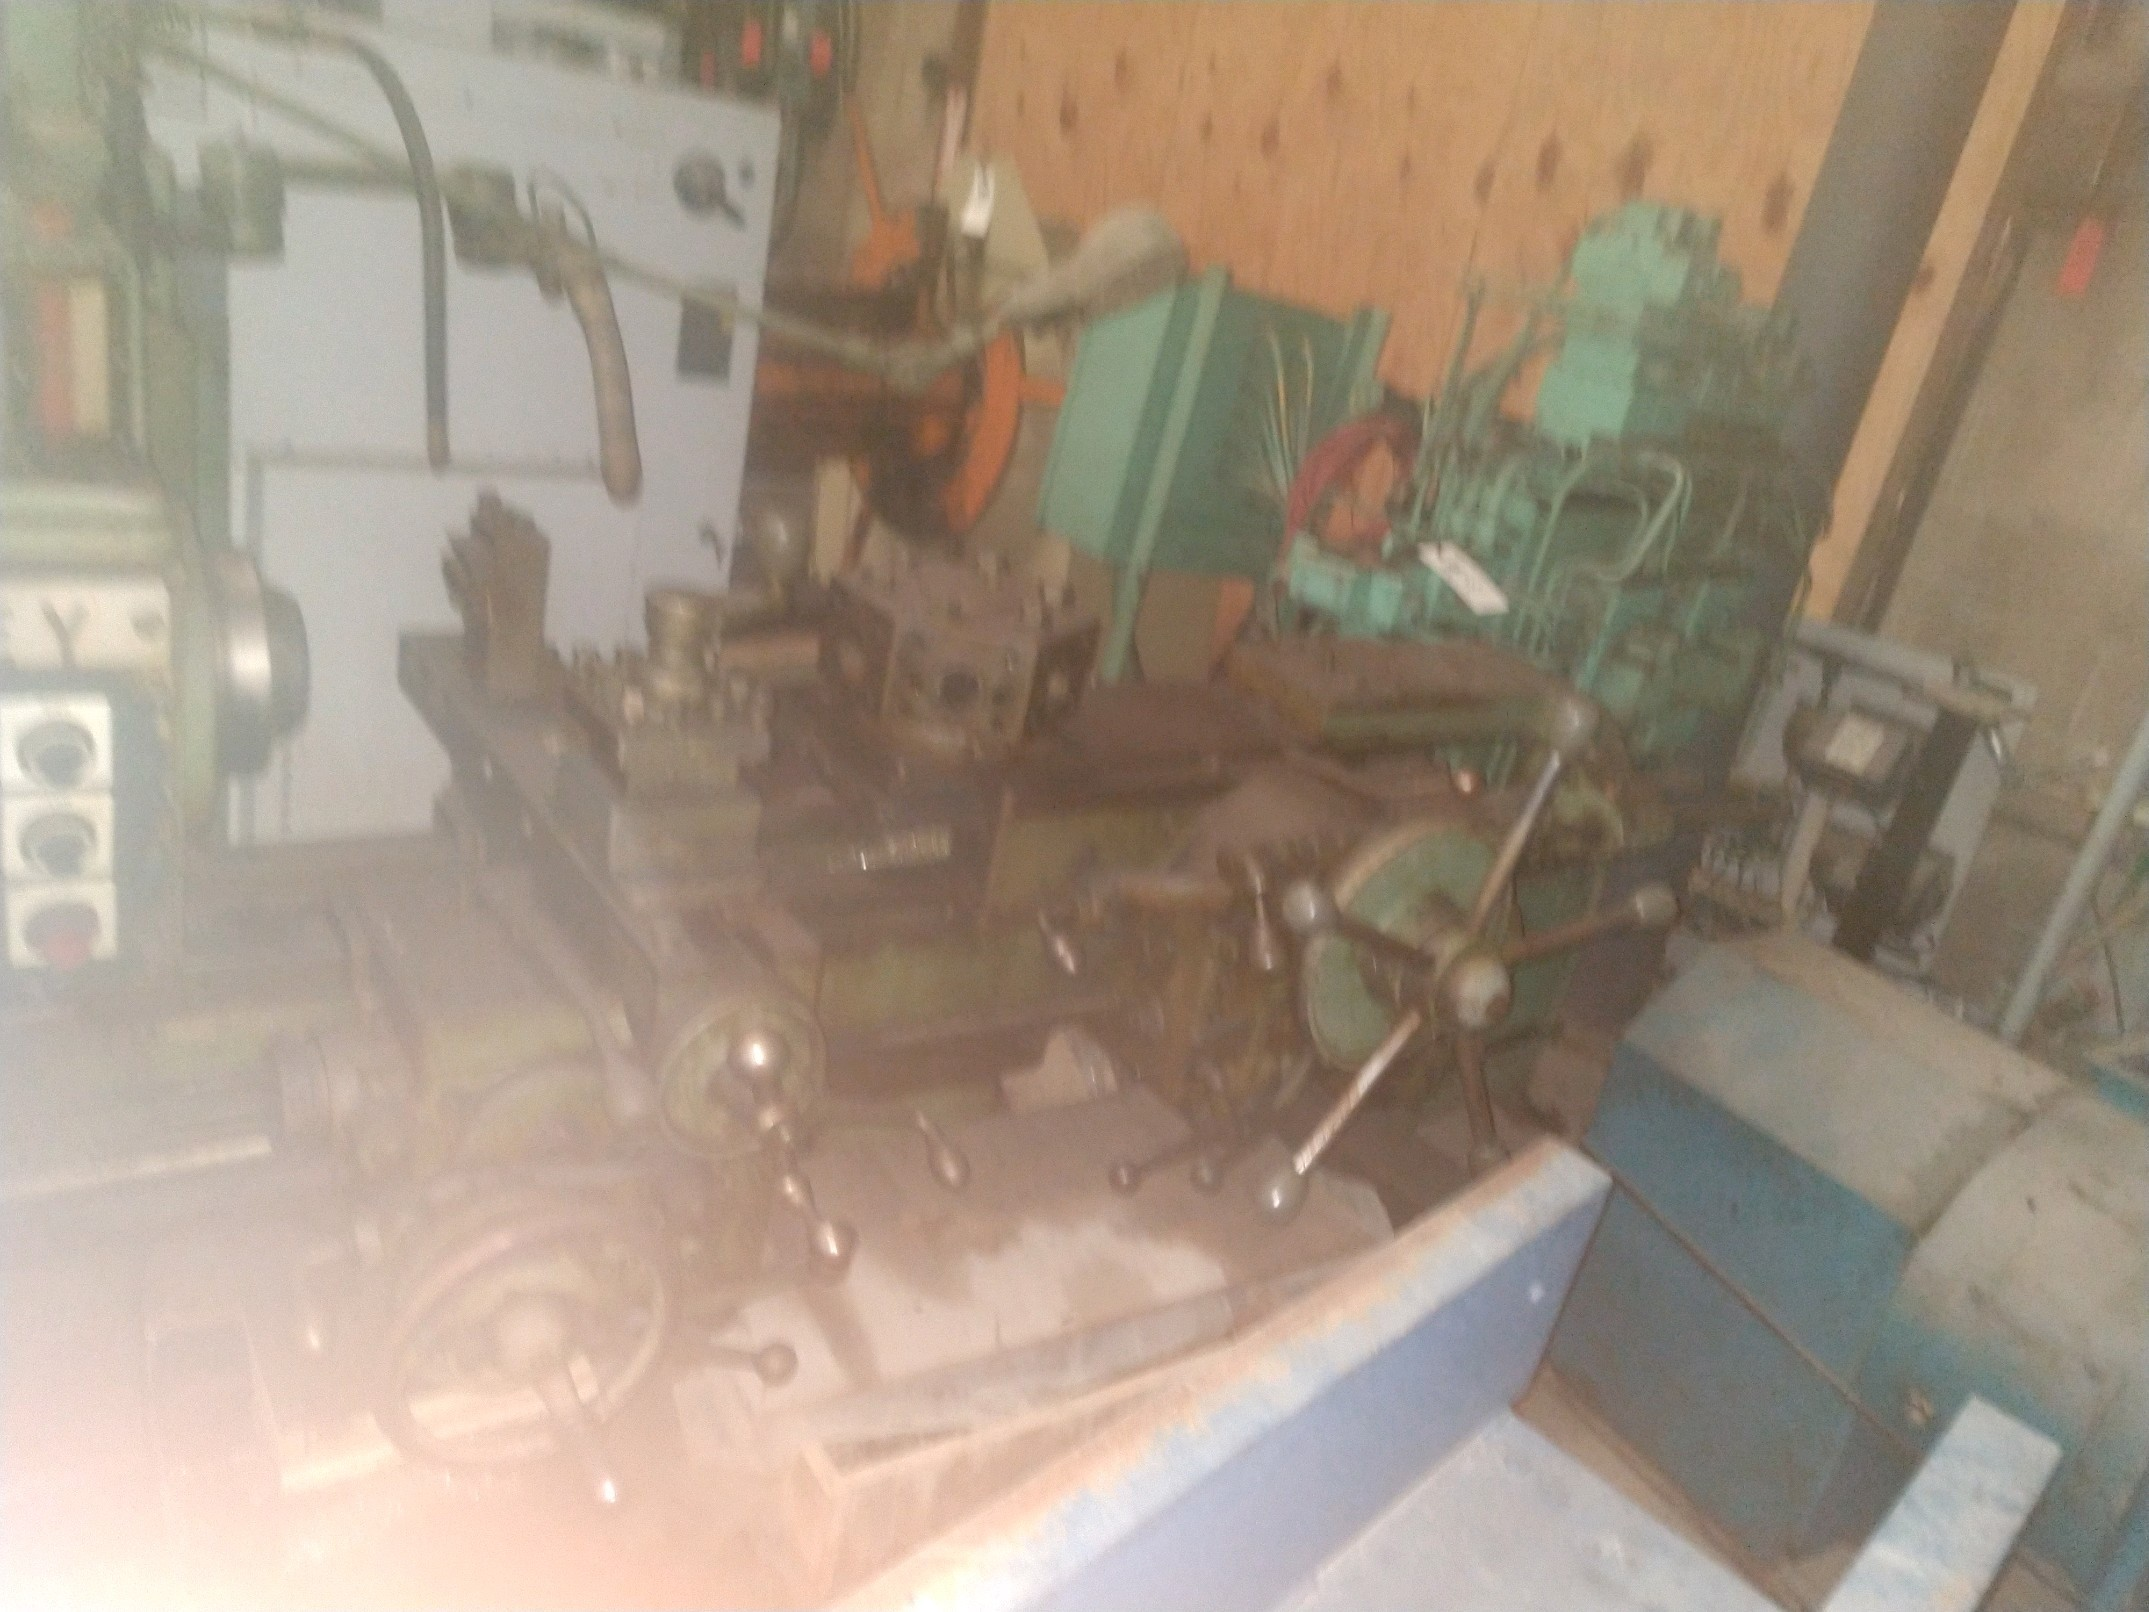 1 PREOWNED WARNER & SWASEY UNIVERSAL TURRET LATHE,<br>MODEL #: #3, S/N: 2171544